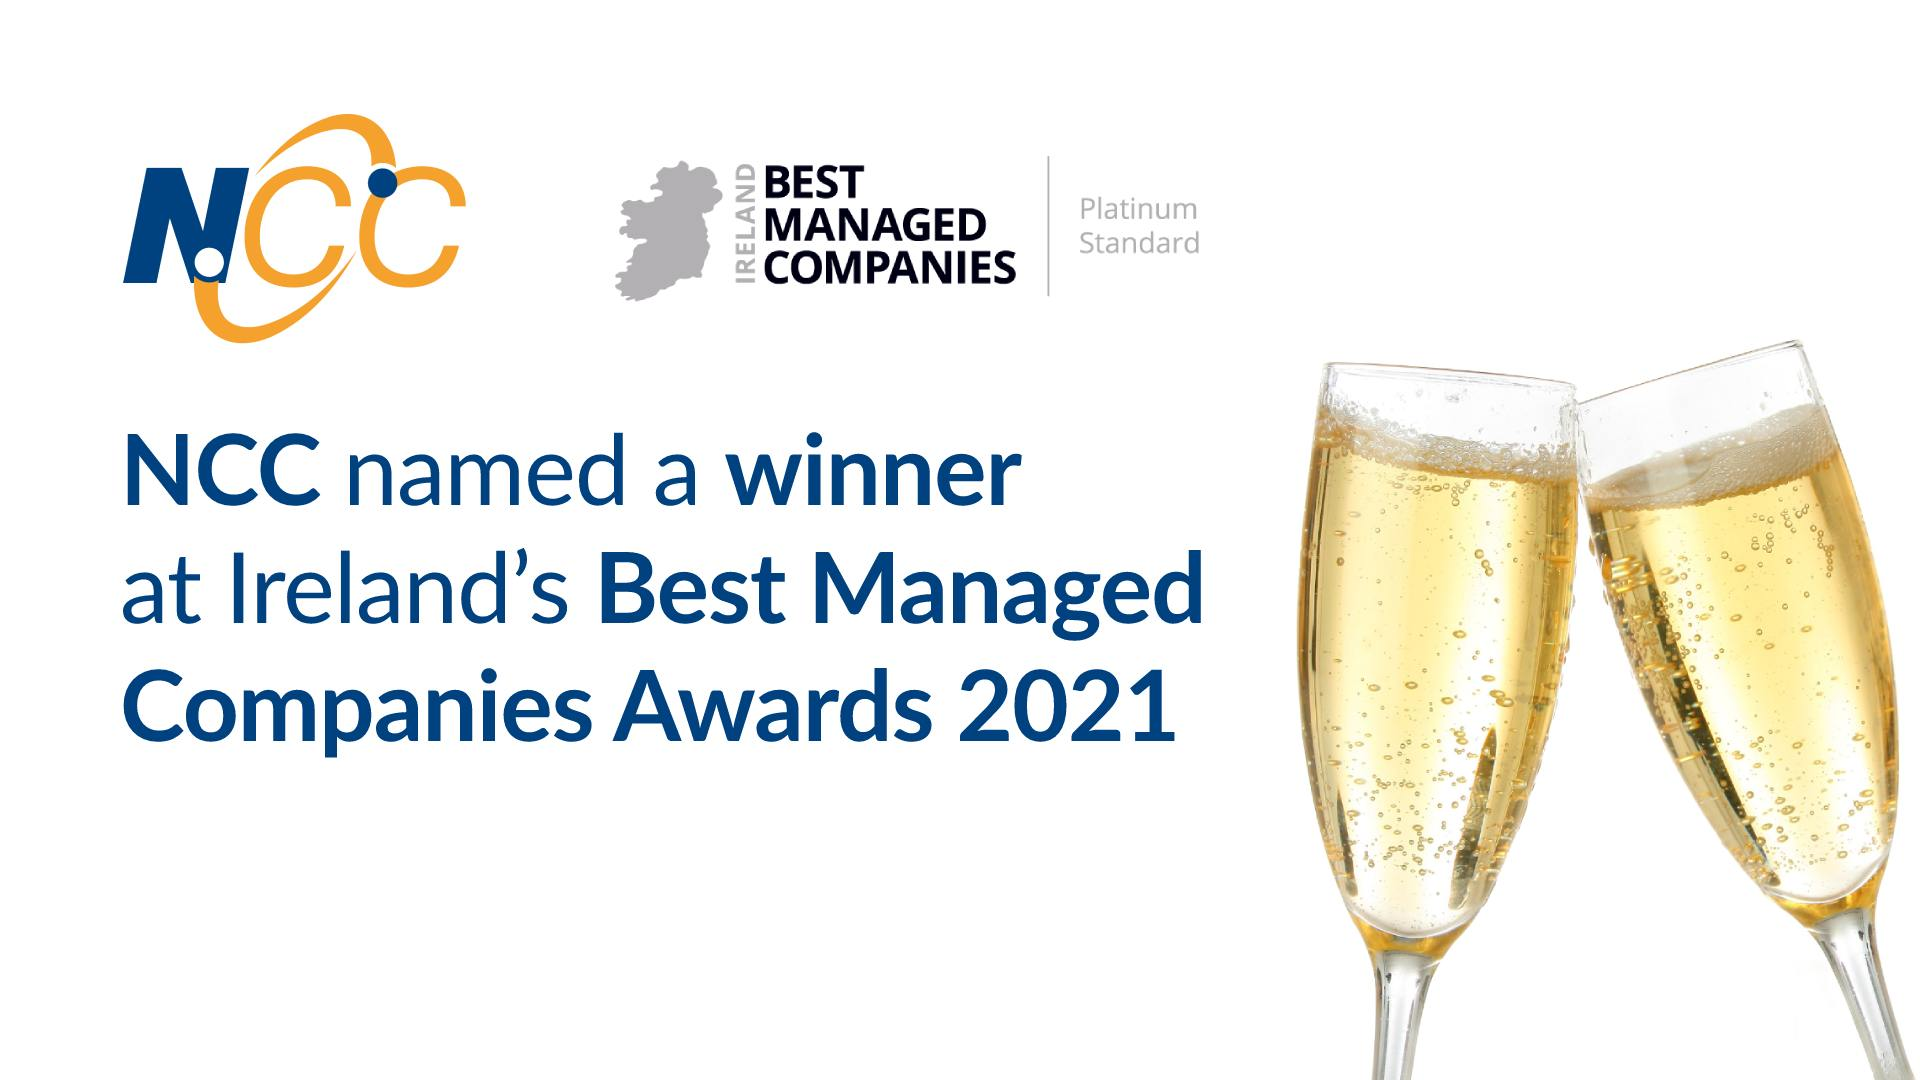 NCC named a winner at Ireland's Best Managed Companies Awards 2021 2